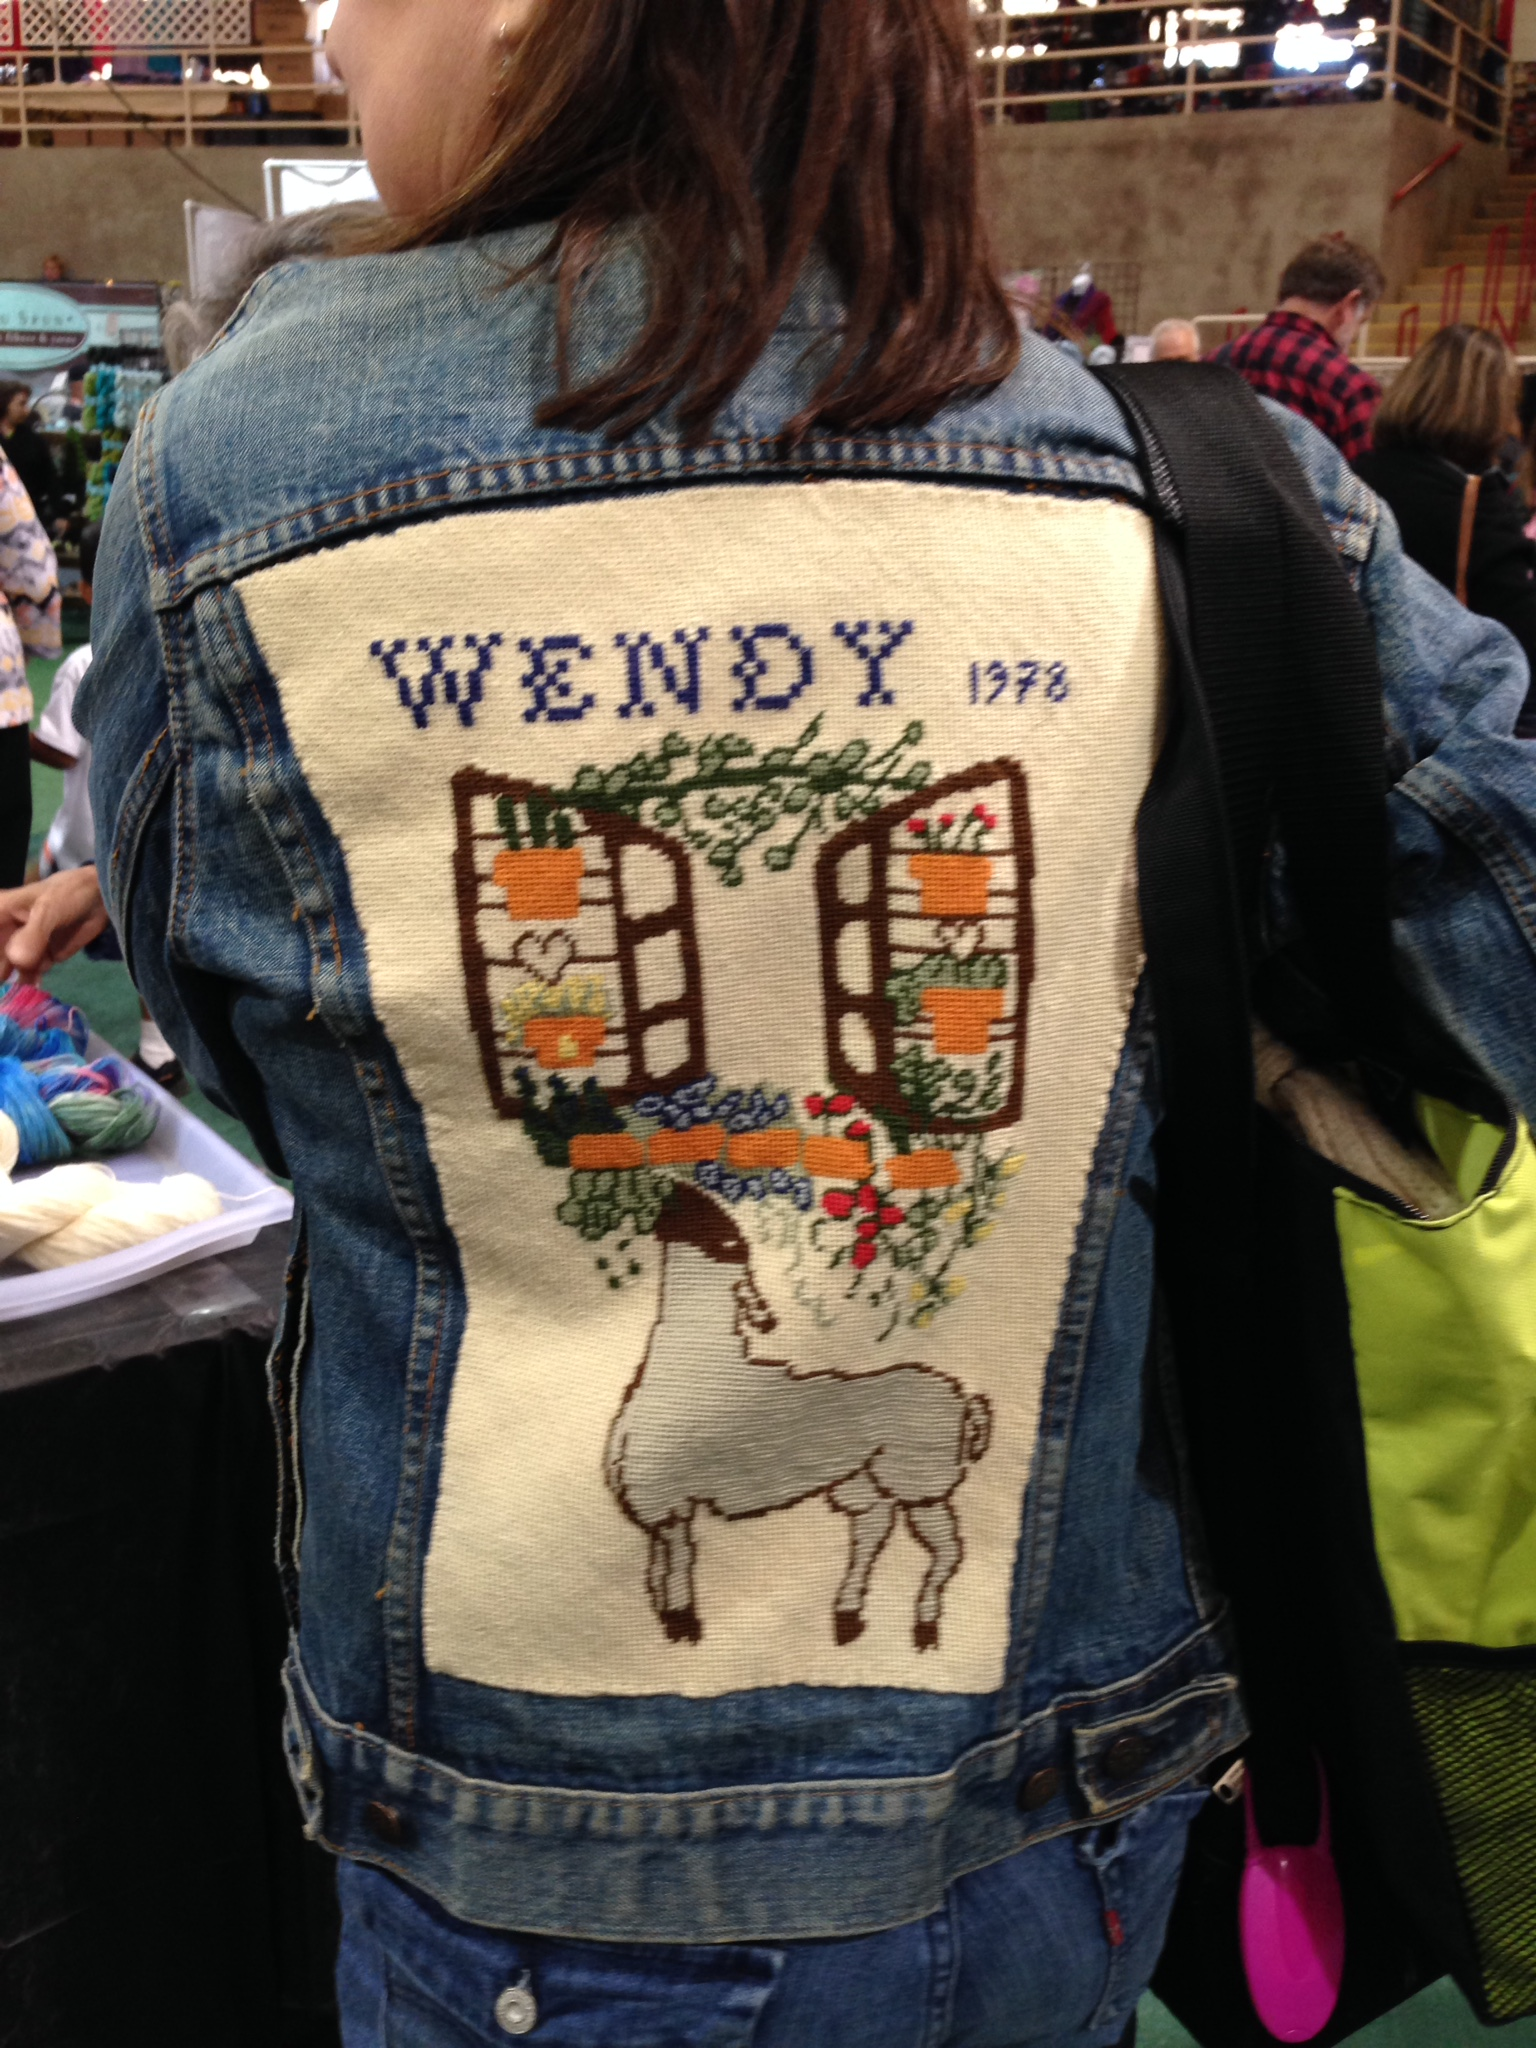 She wins Denim Jacket.